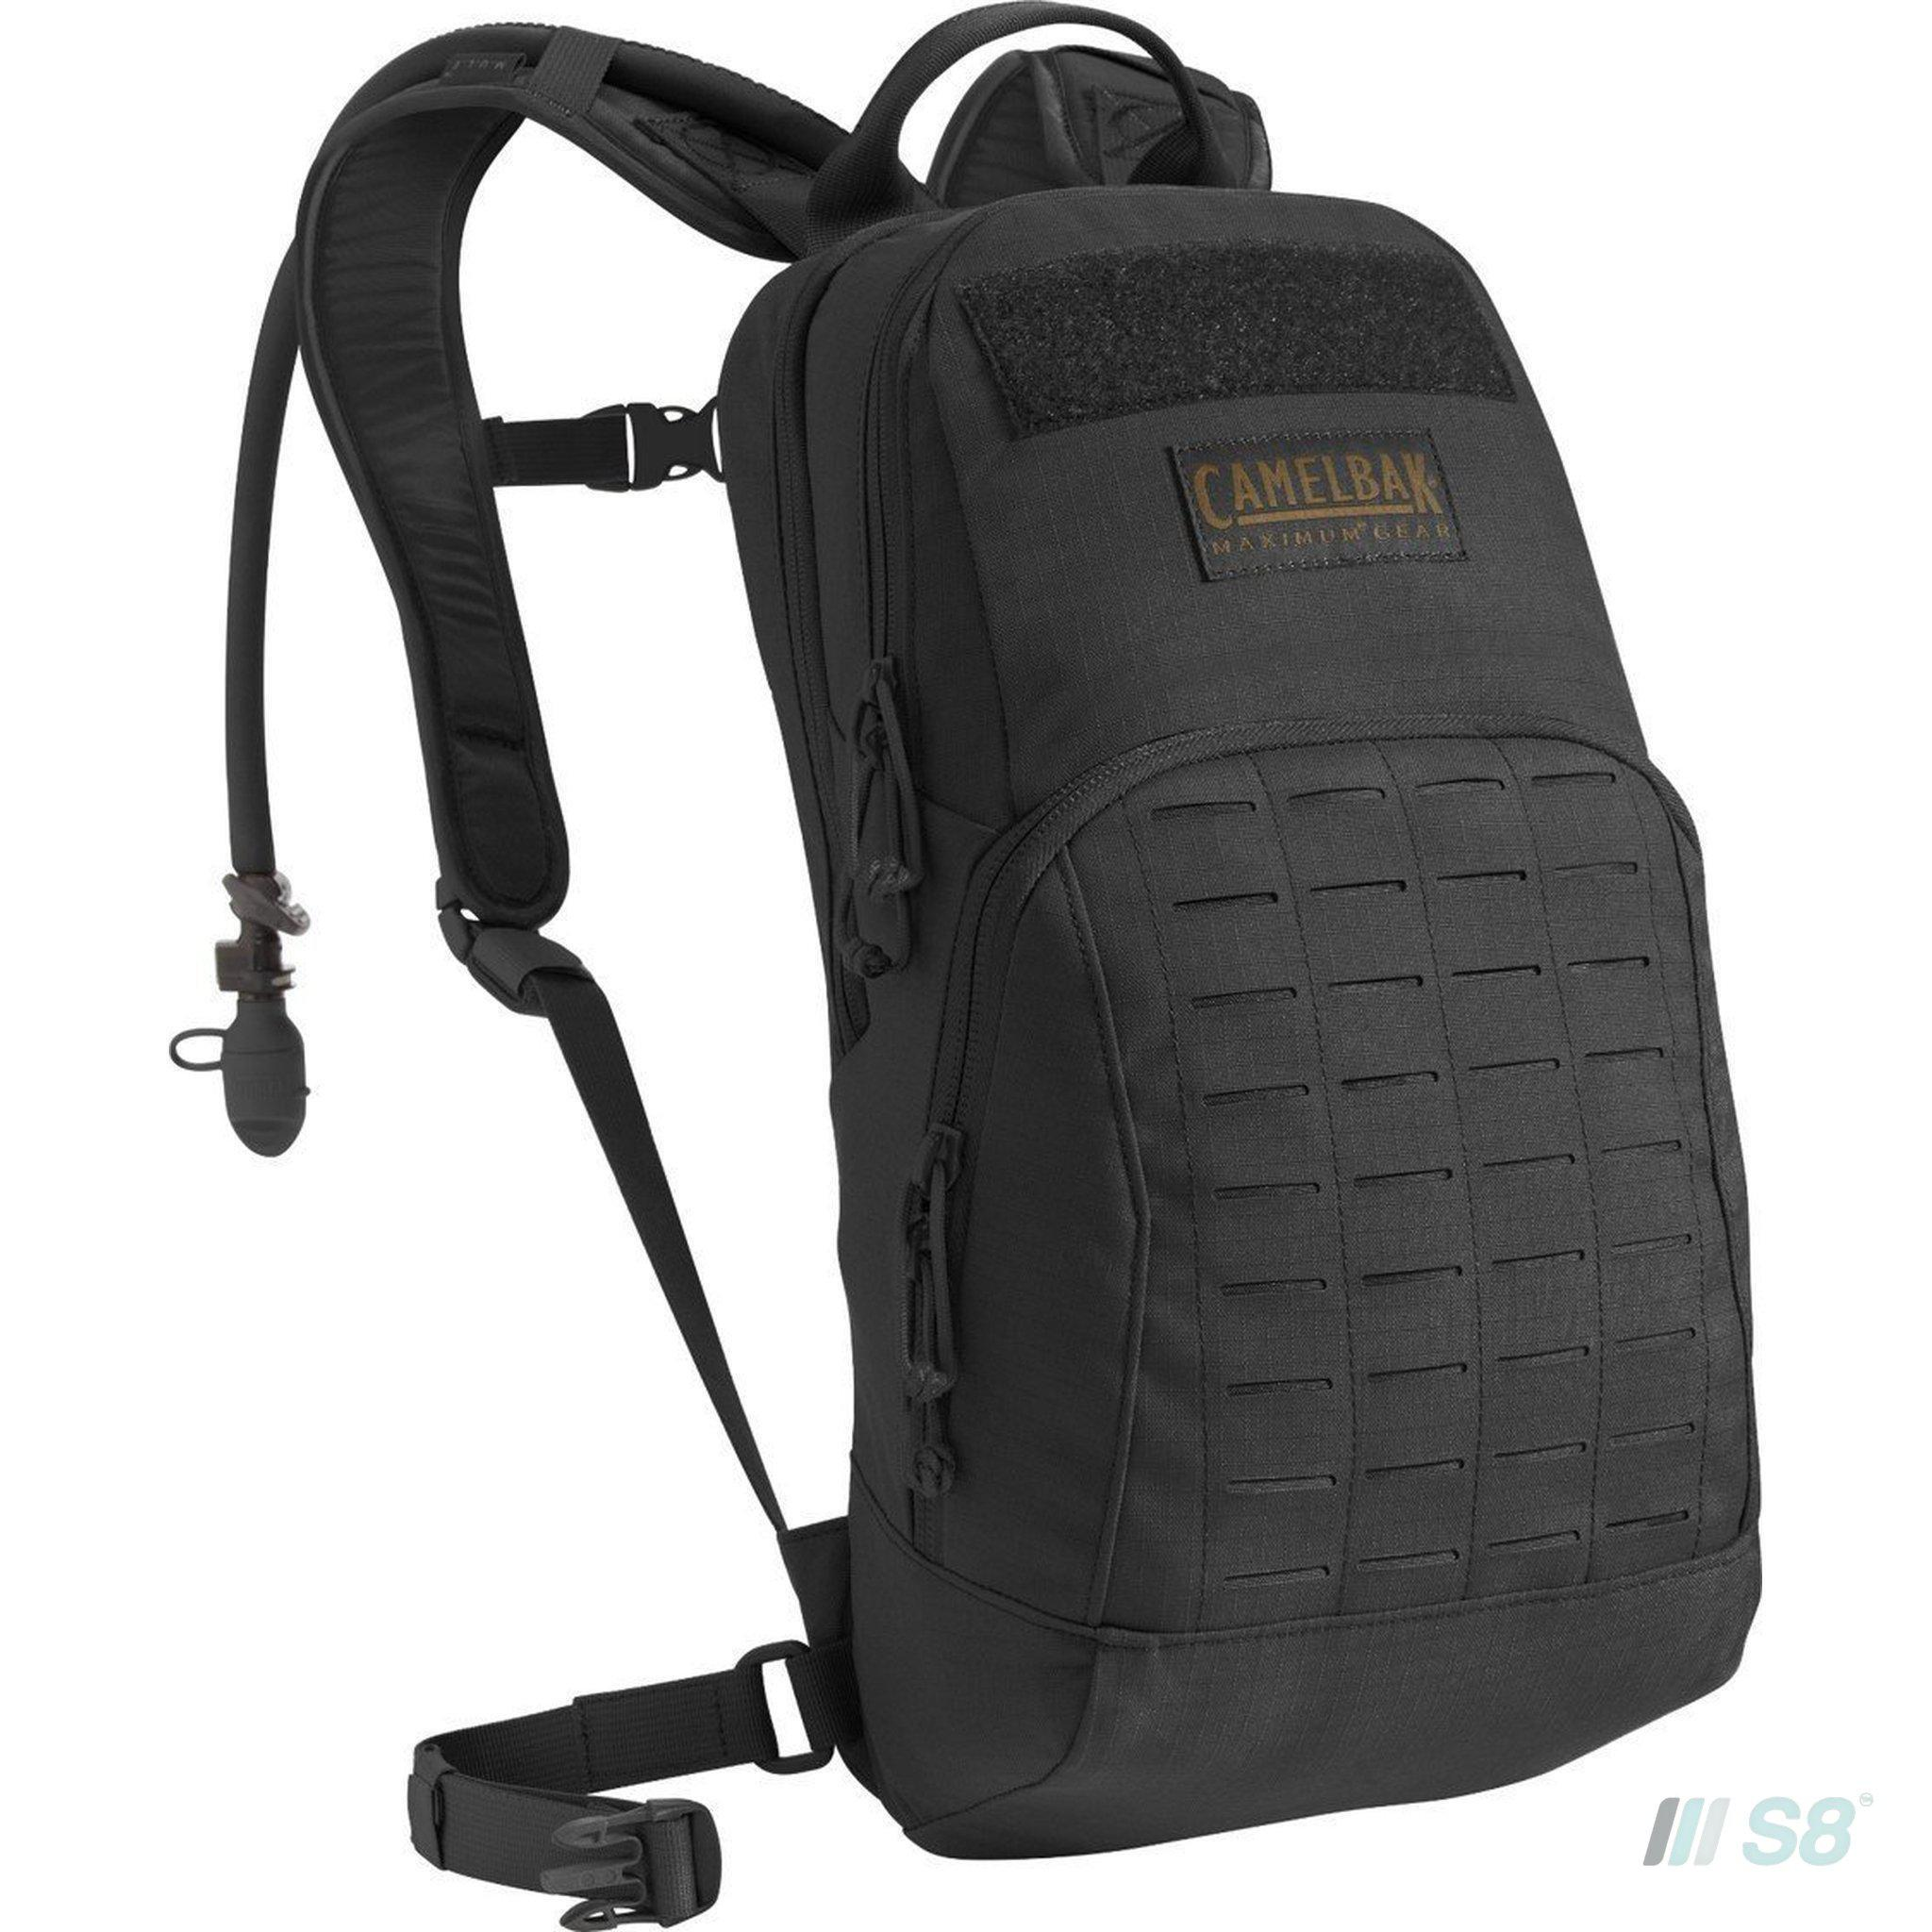 Mil Tac M.U.L.E.-Camelbak-S8 Products Group